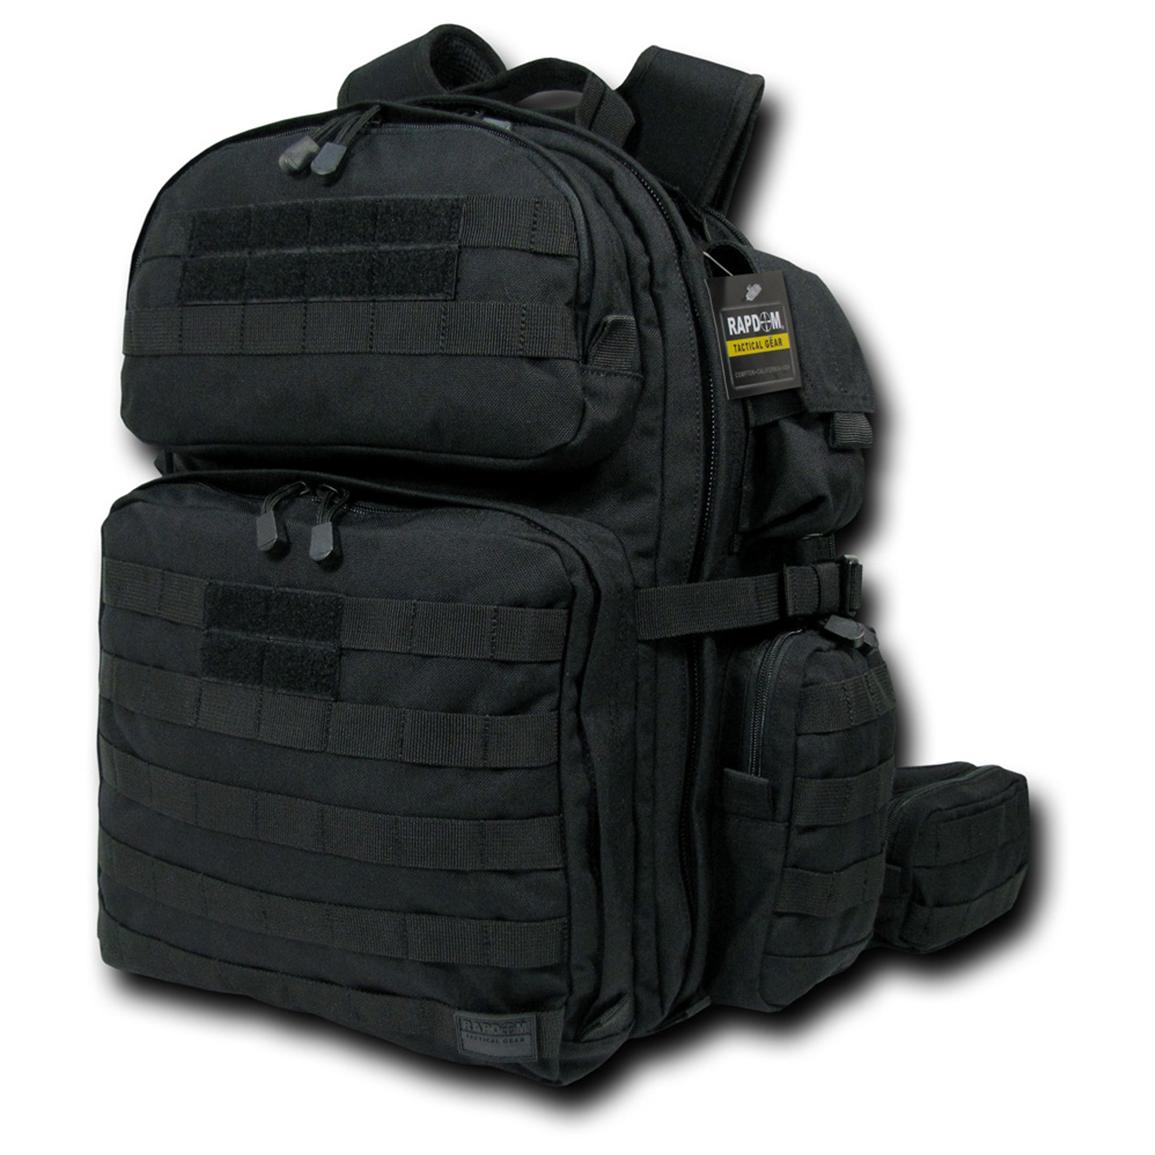 Rapid Dominance Tactical Rex (T-Rex) Assault Pack, Black